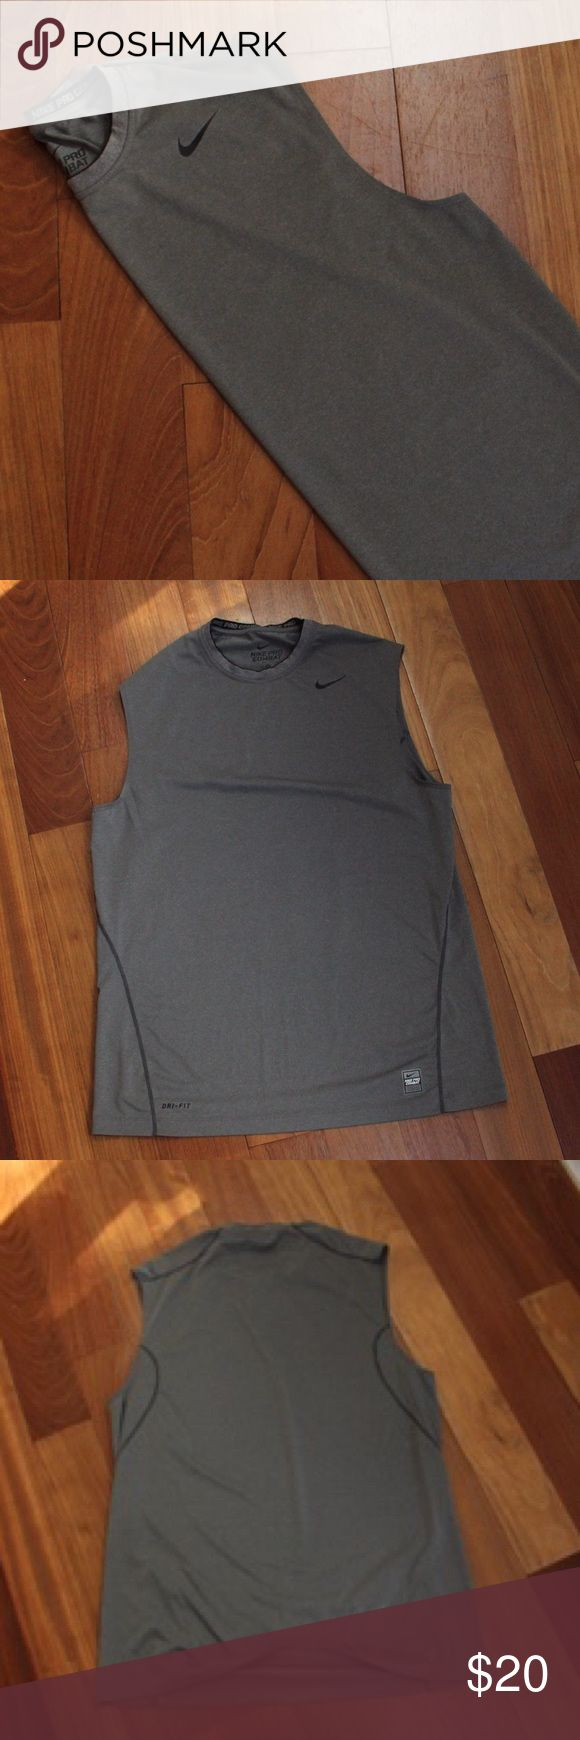 Nike Pro Combat Tank Perfect condition Nike Pro Combat Tank Top. No flaws! Nike Shirts Tank Tops